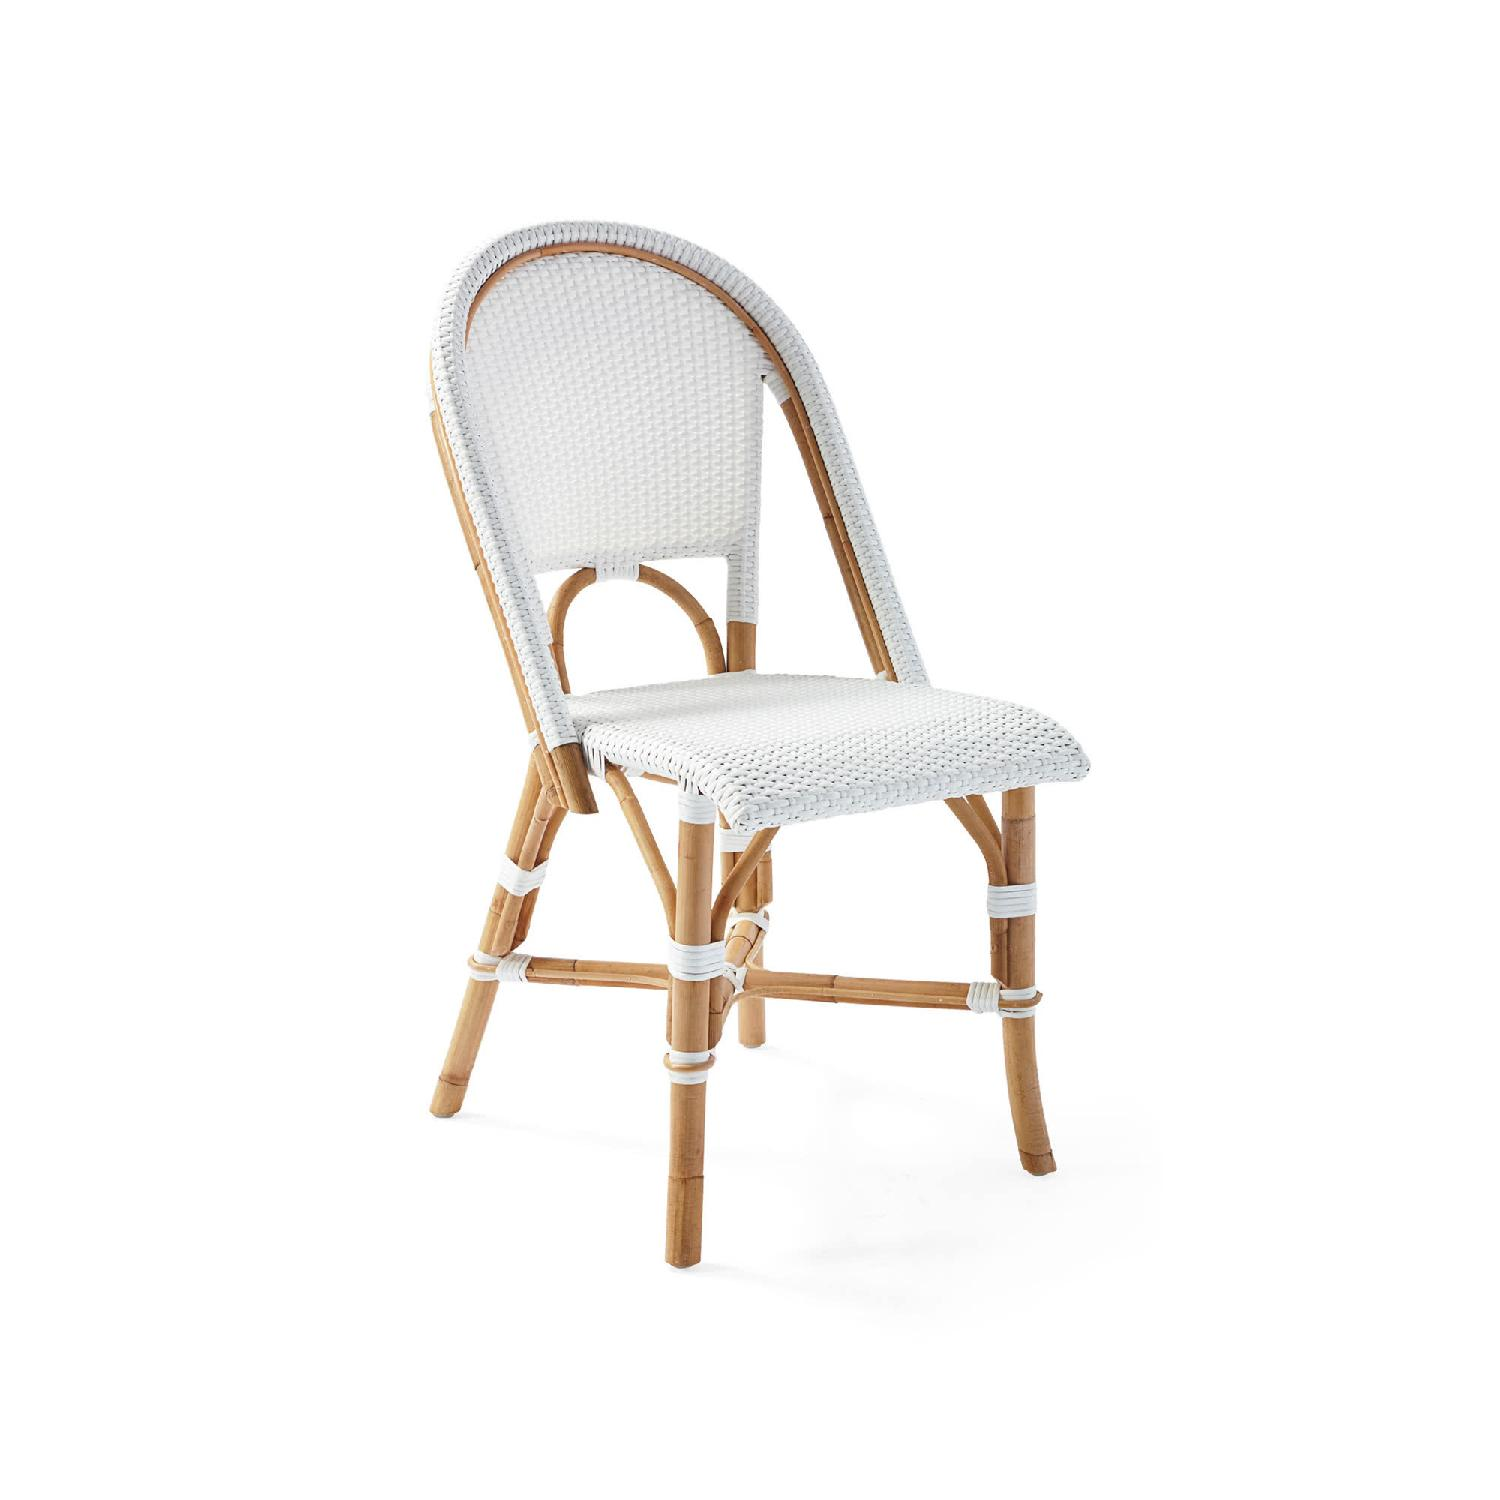 Serena & Lily Riviera Dining Chairs - image-0